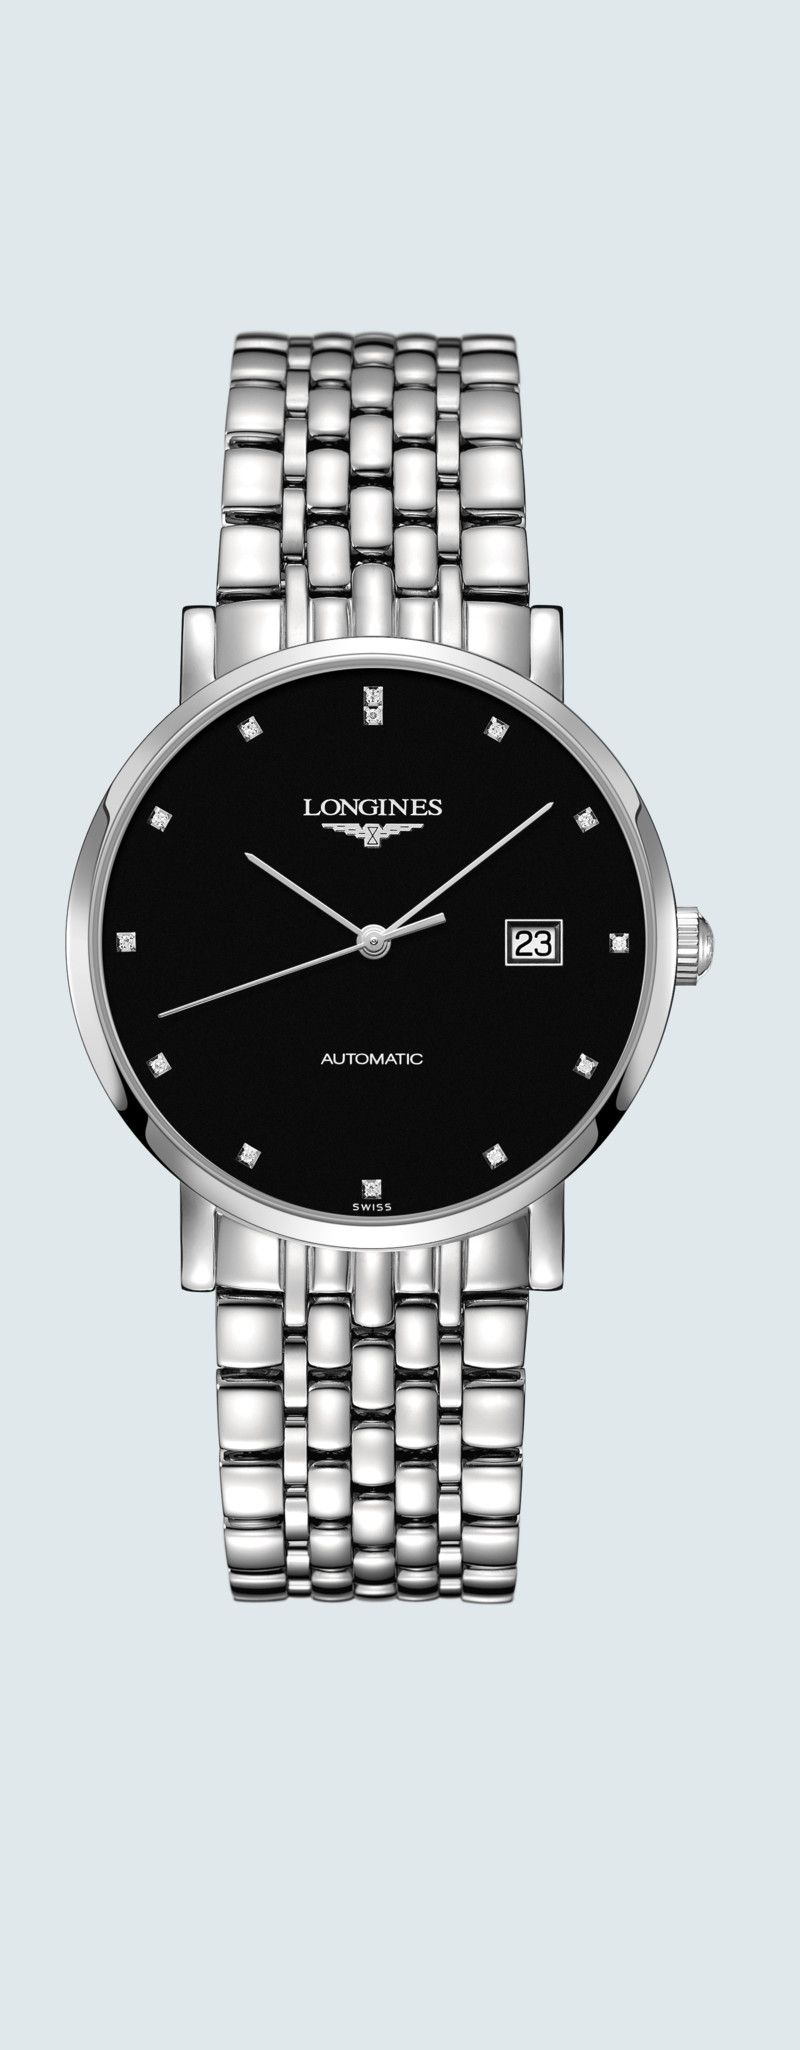 39.00 mm Stainless steel case with Sunray black dial and Stainless steel strap - case zoom view